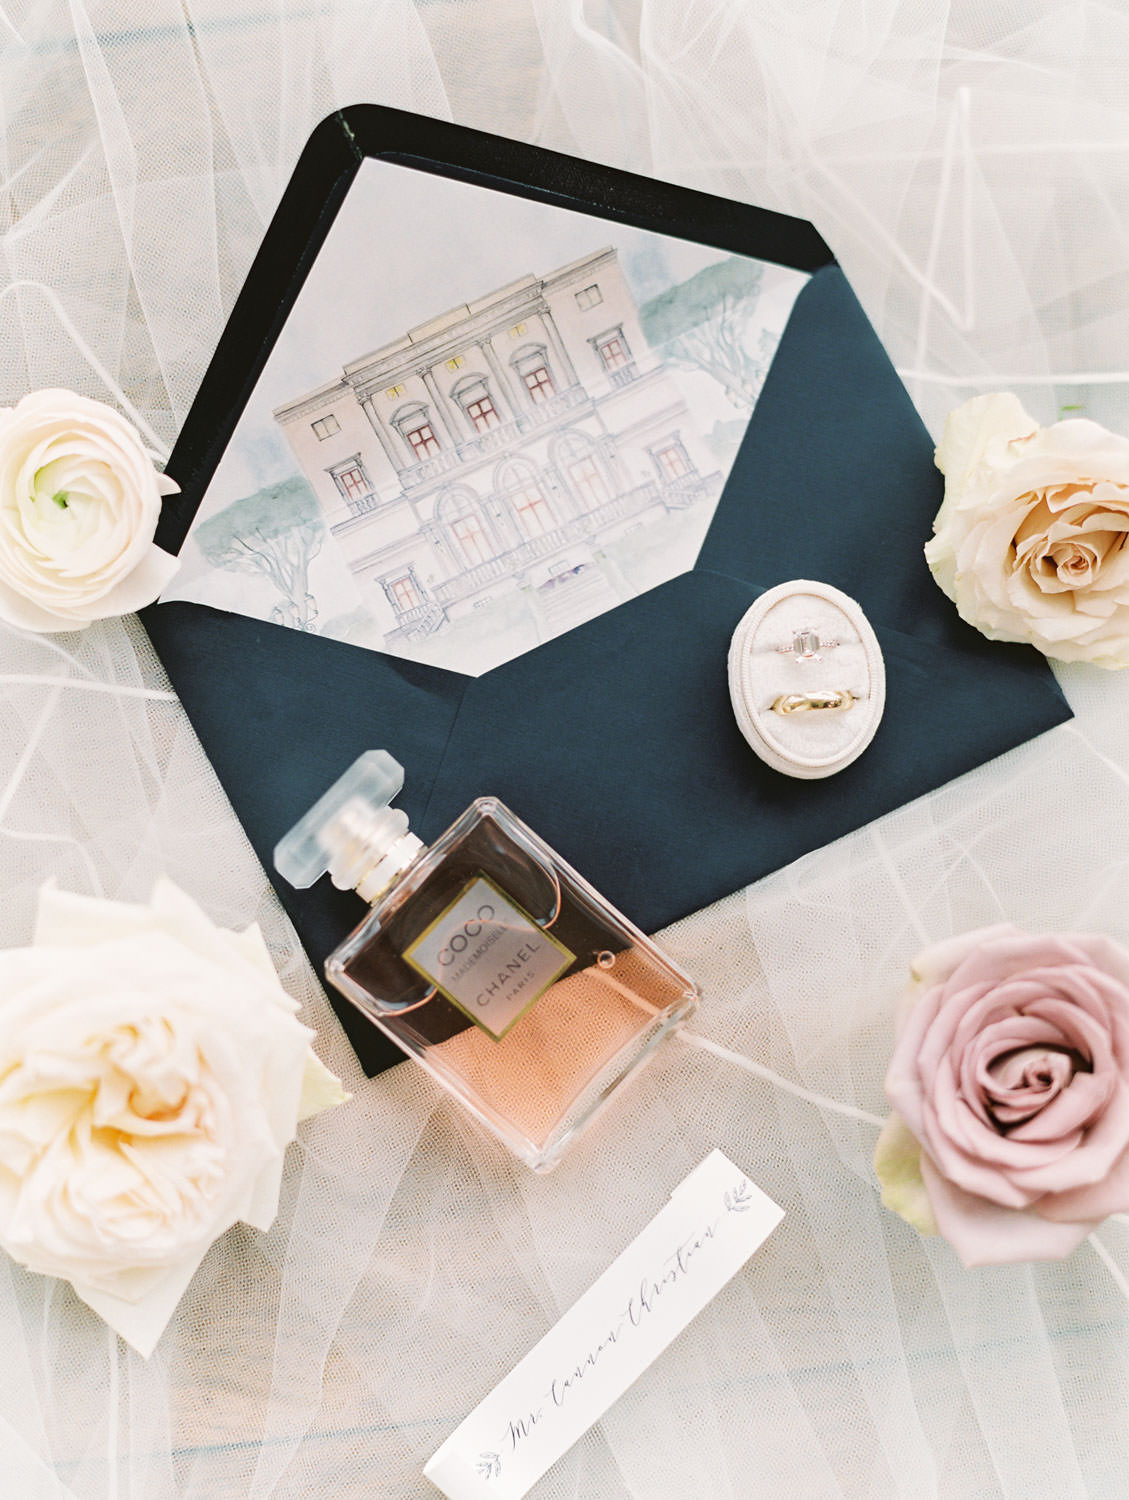 Film photography, flowers and bride's perfume, invitation with Italy venue illustration envelope liner, Cavin Elizabeth Photography